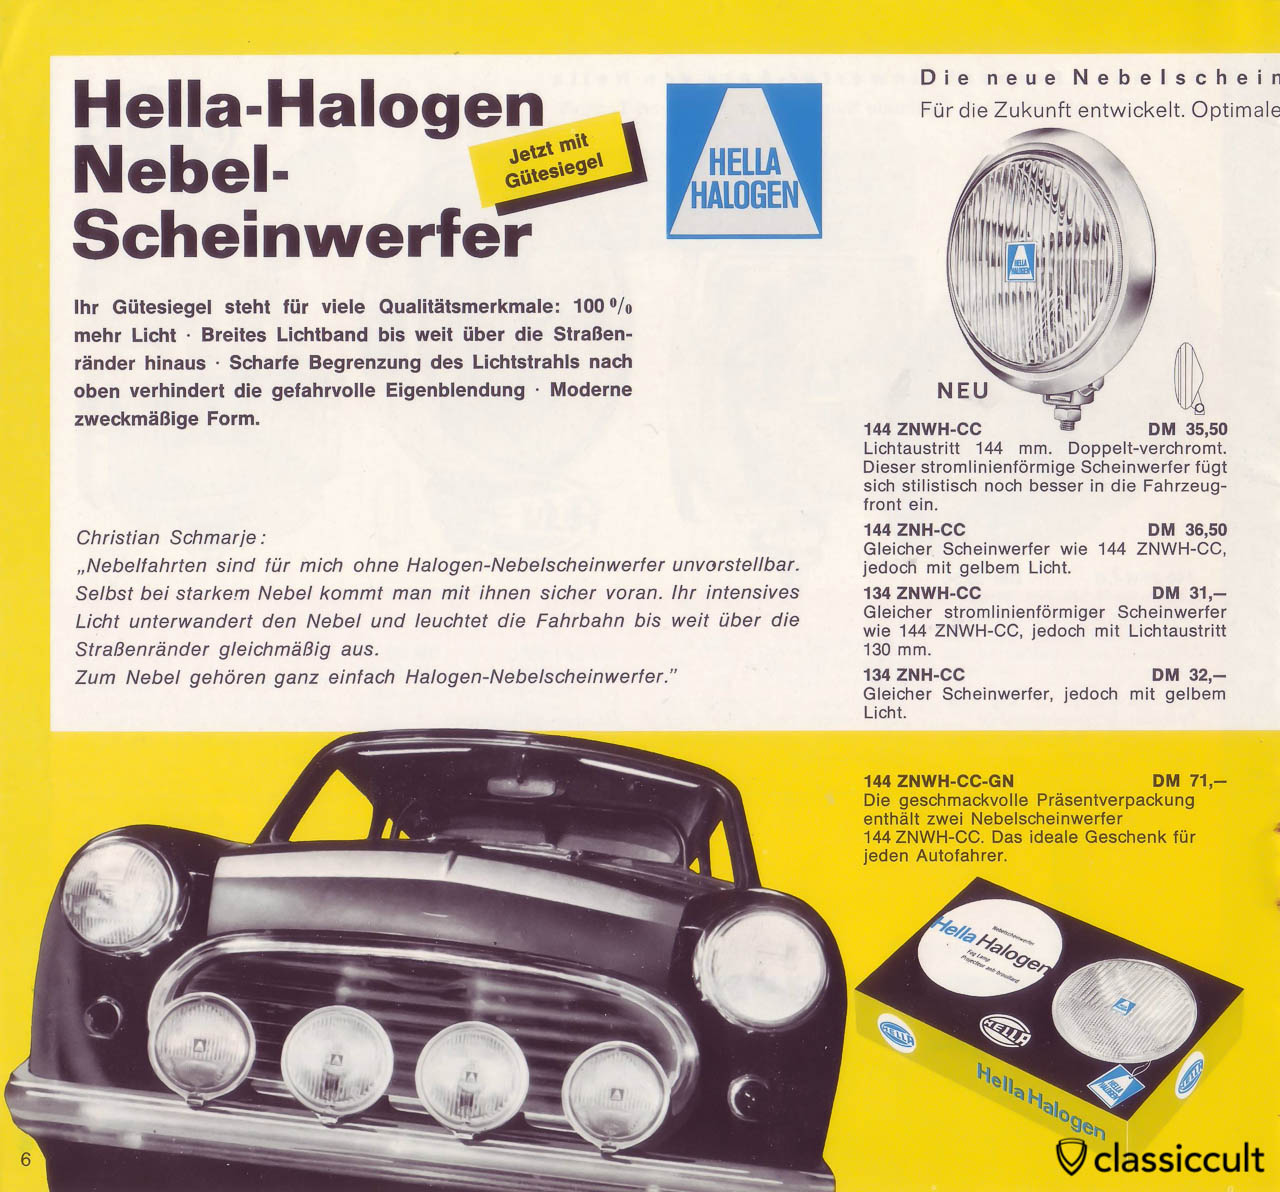 Hella 144 Halogen fog light with 144 mm lens and Hella 134 Halogen fog lights with 130 mm lenses was available with white and yellow light.